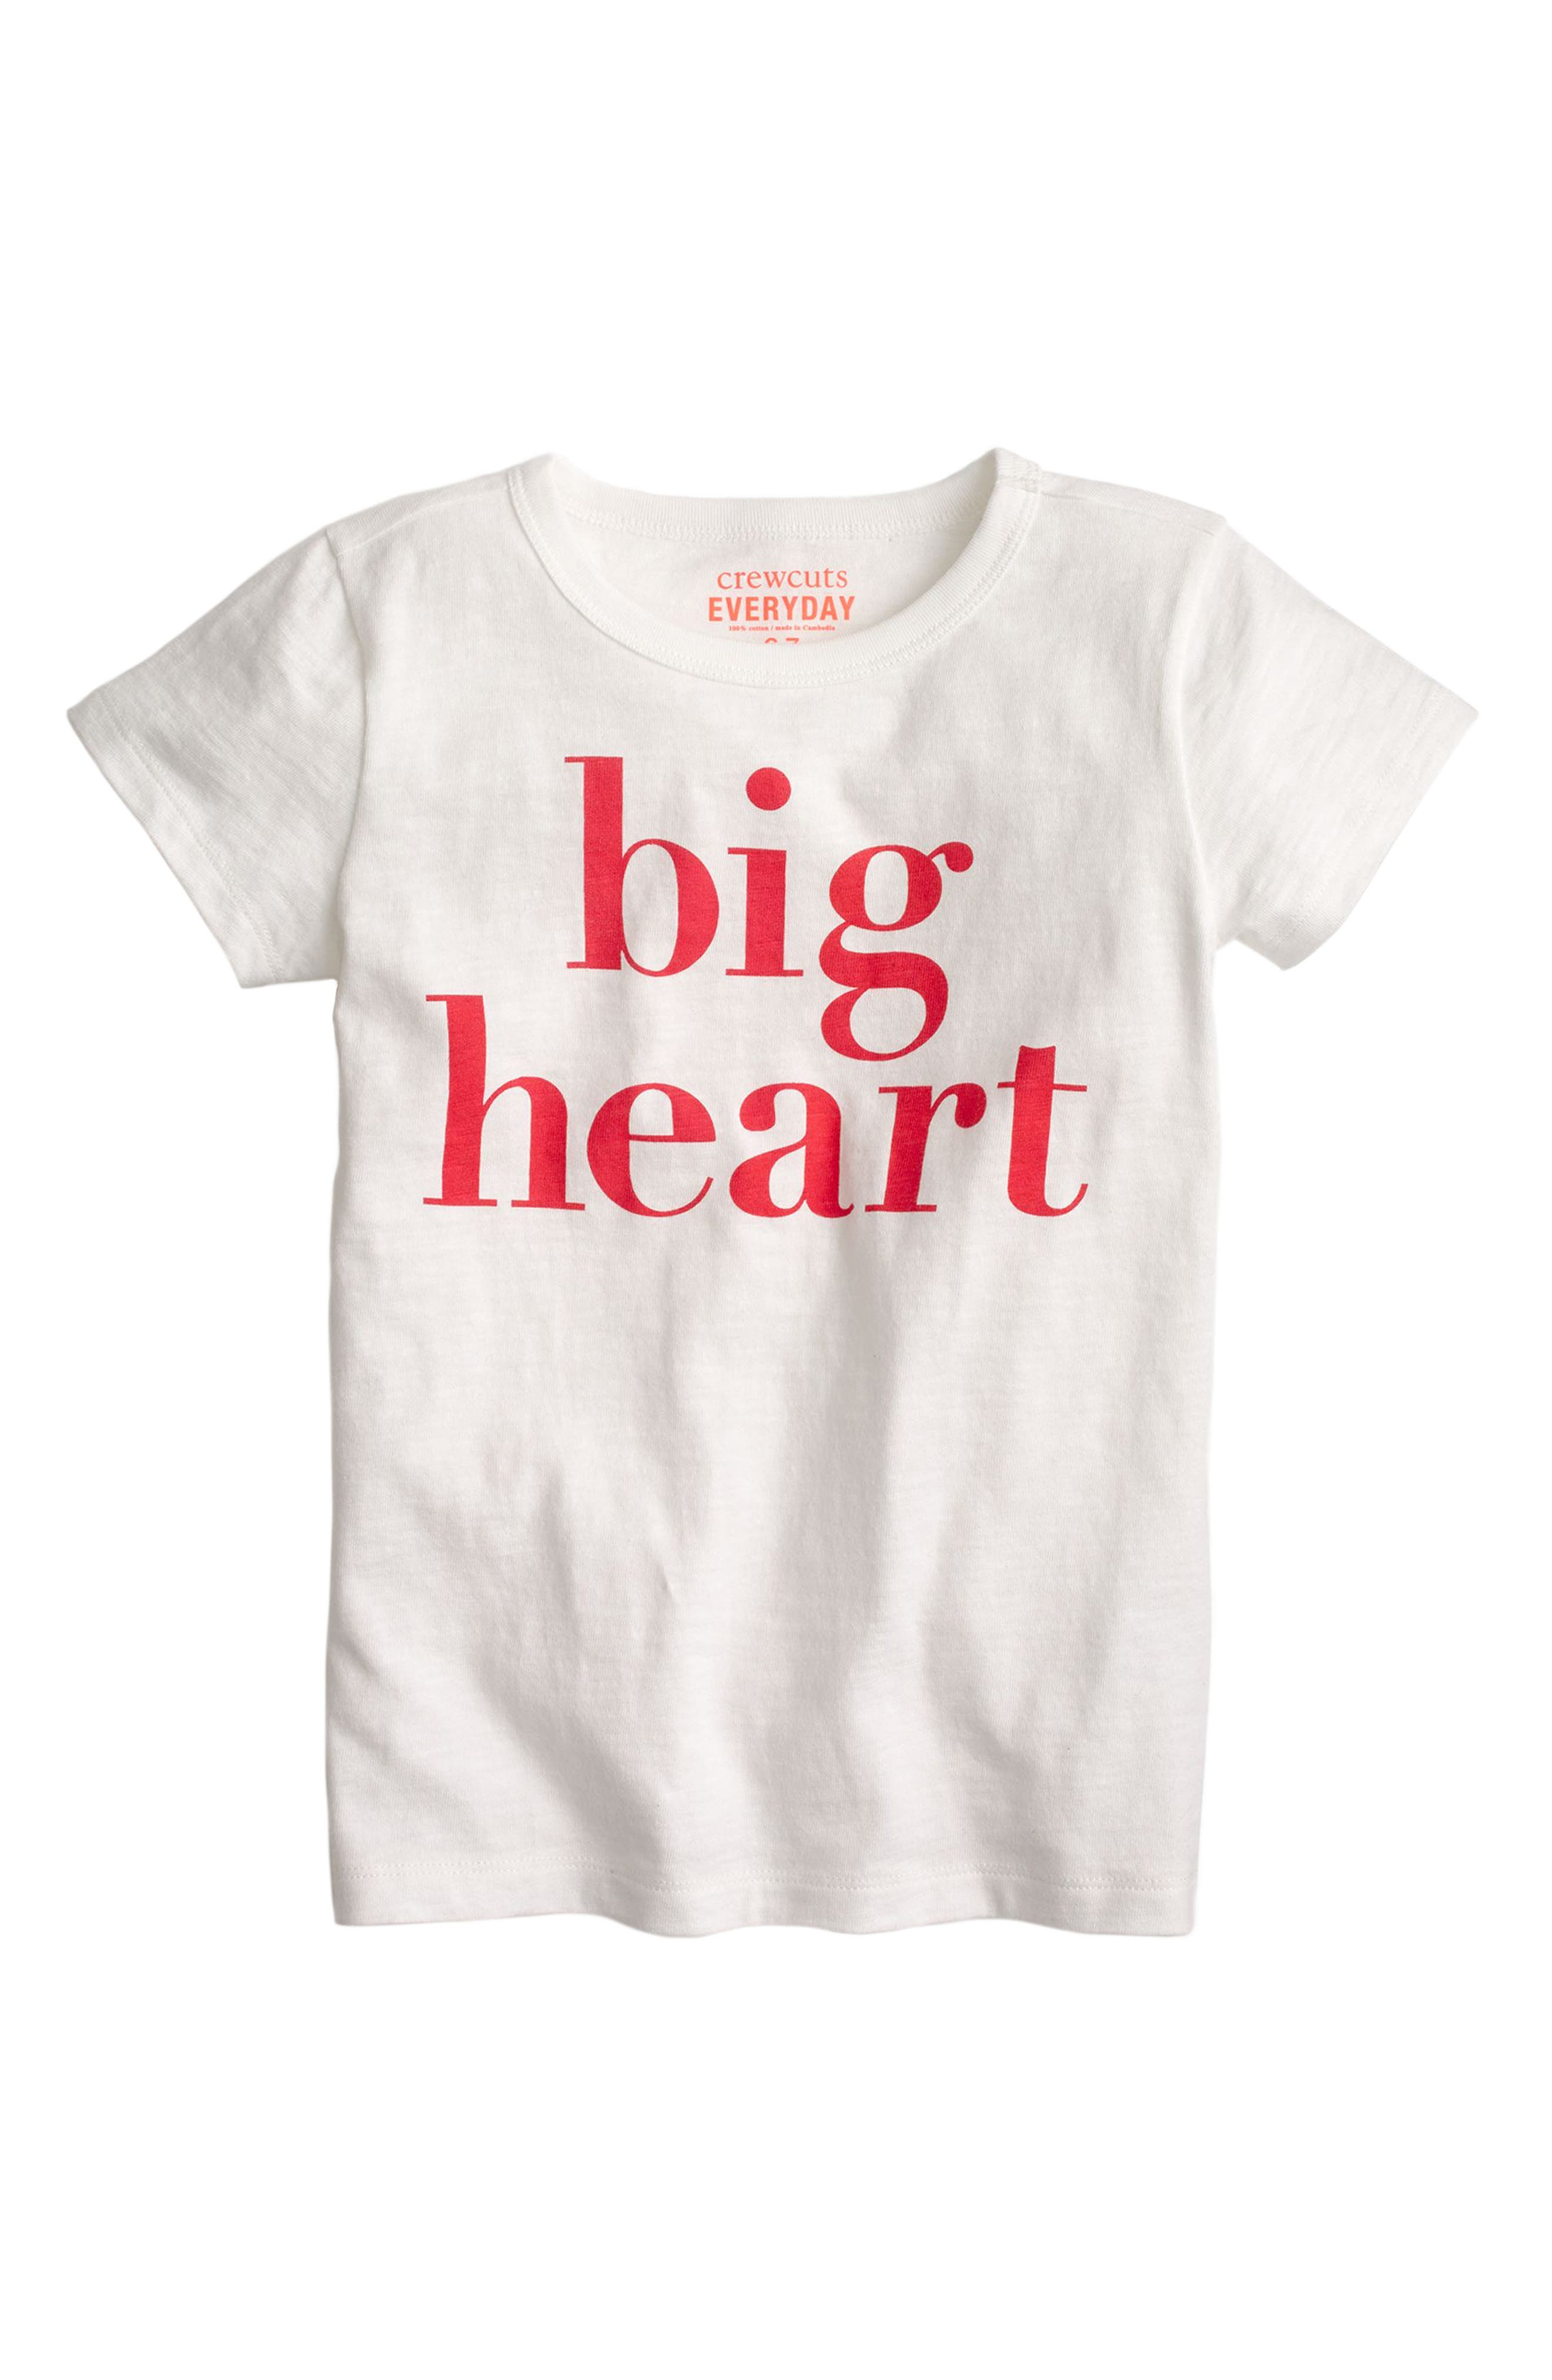 crewcuts by J.Crew Big Heart Graphic Cotton Tee (Toddler Girls, Little Girls & Big Girls)